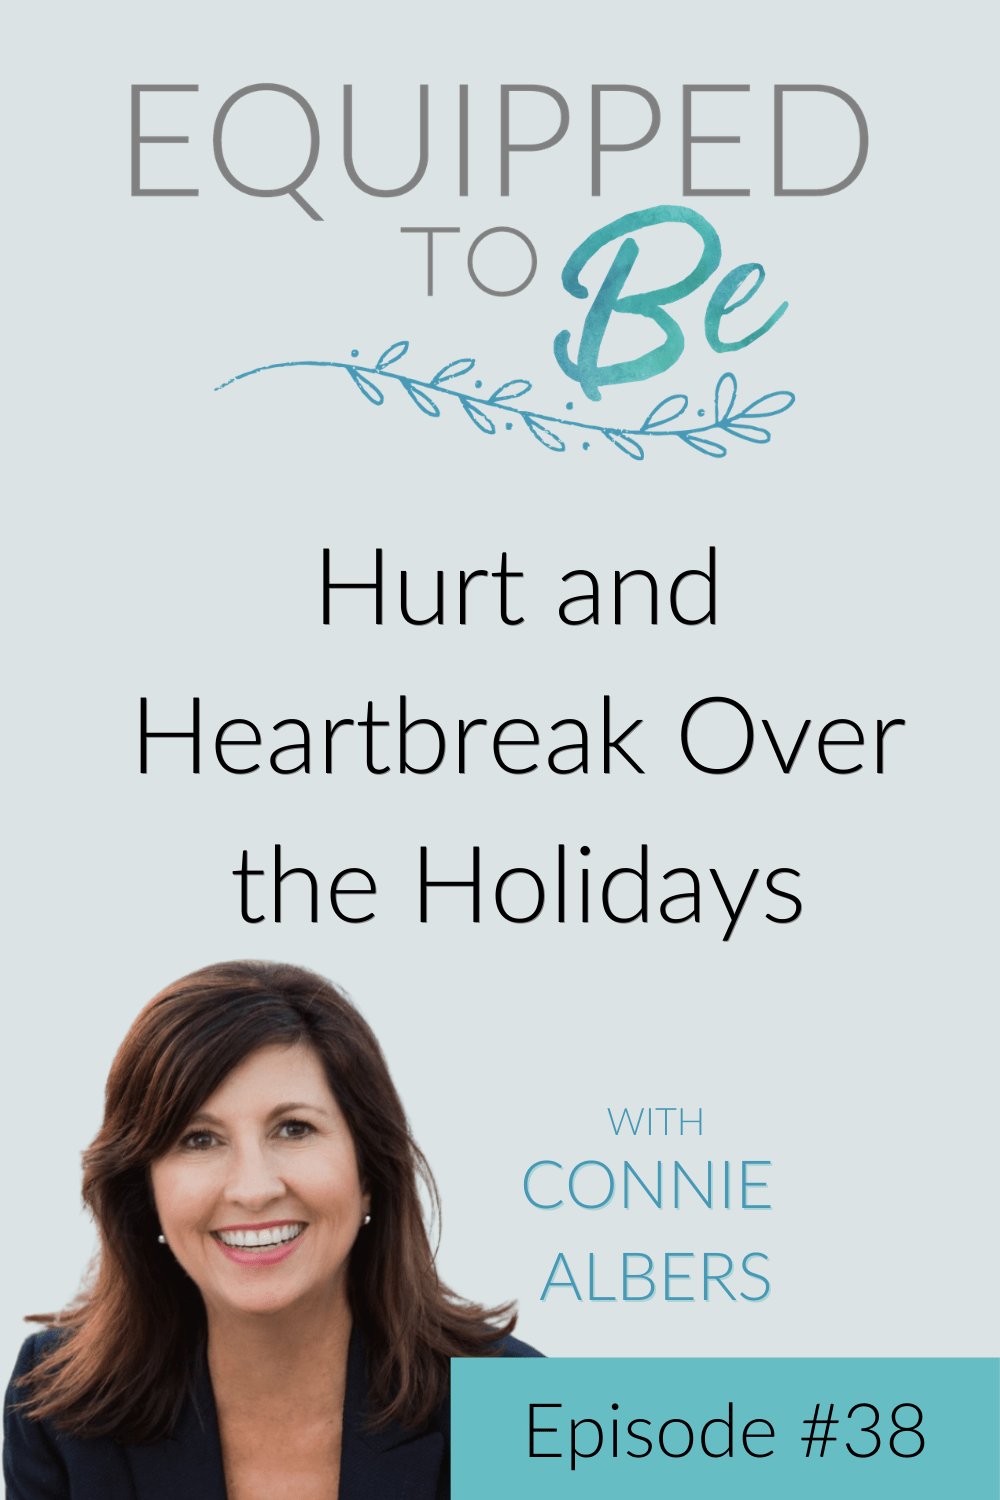 Hurt and Heartbreak Over the Holidays - ETB #38